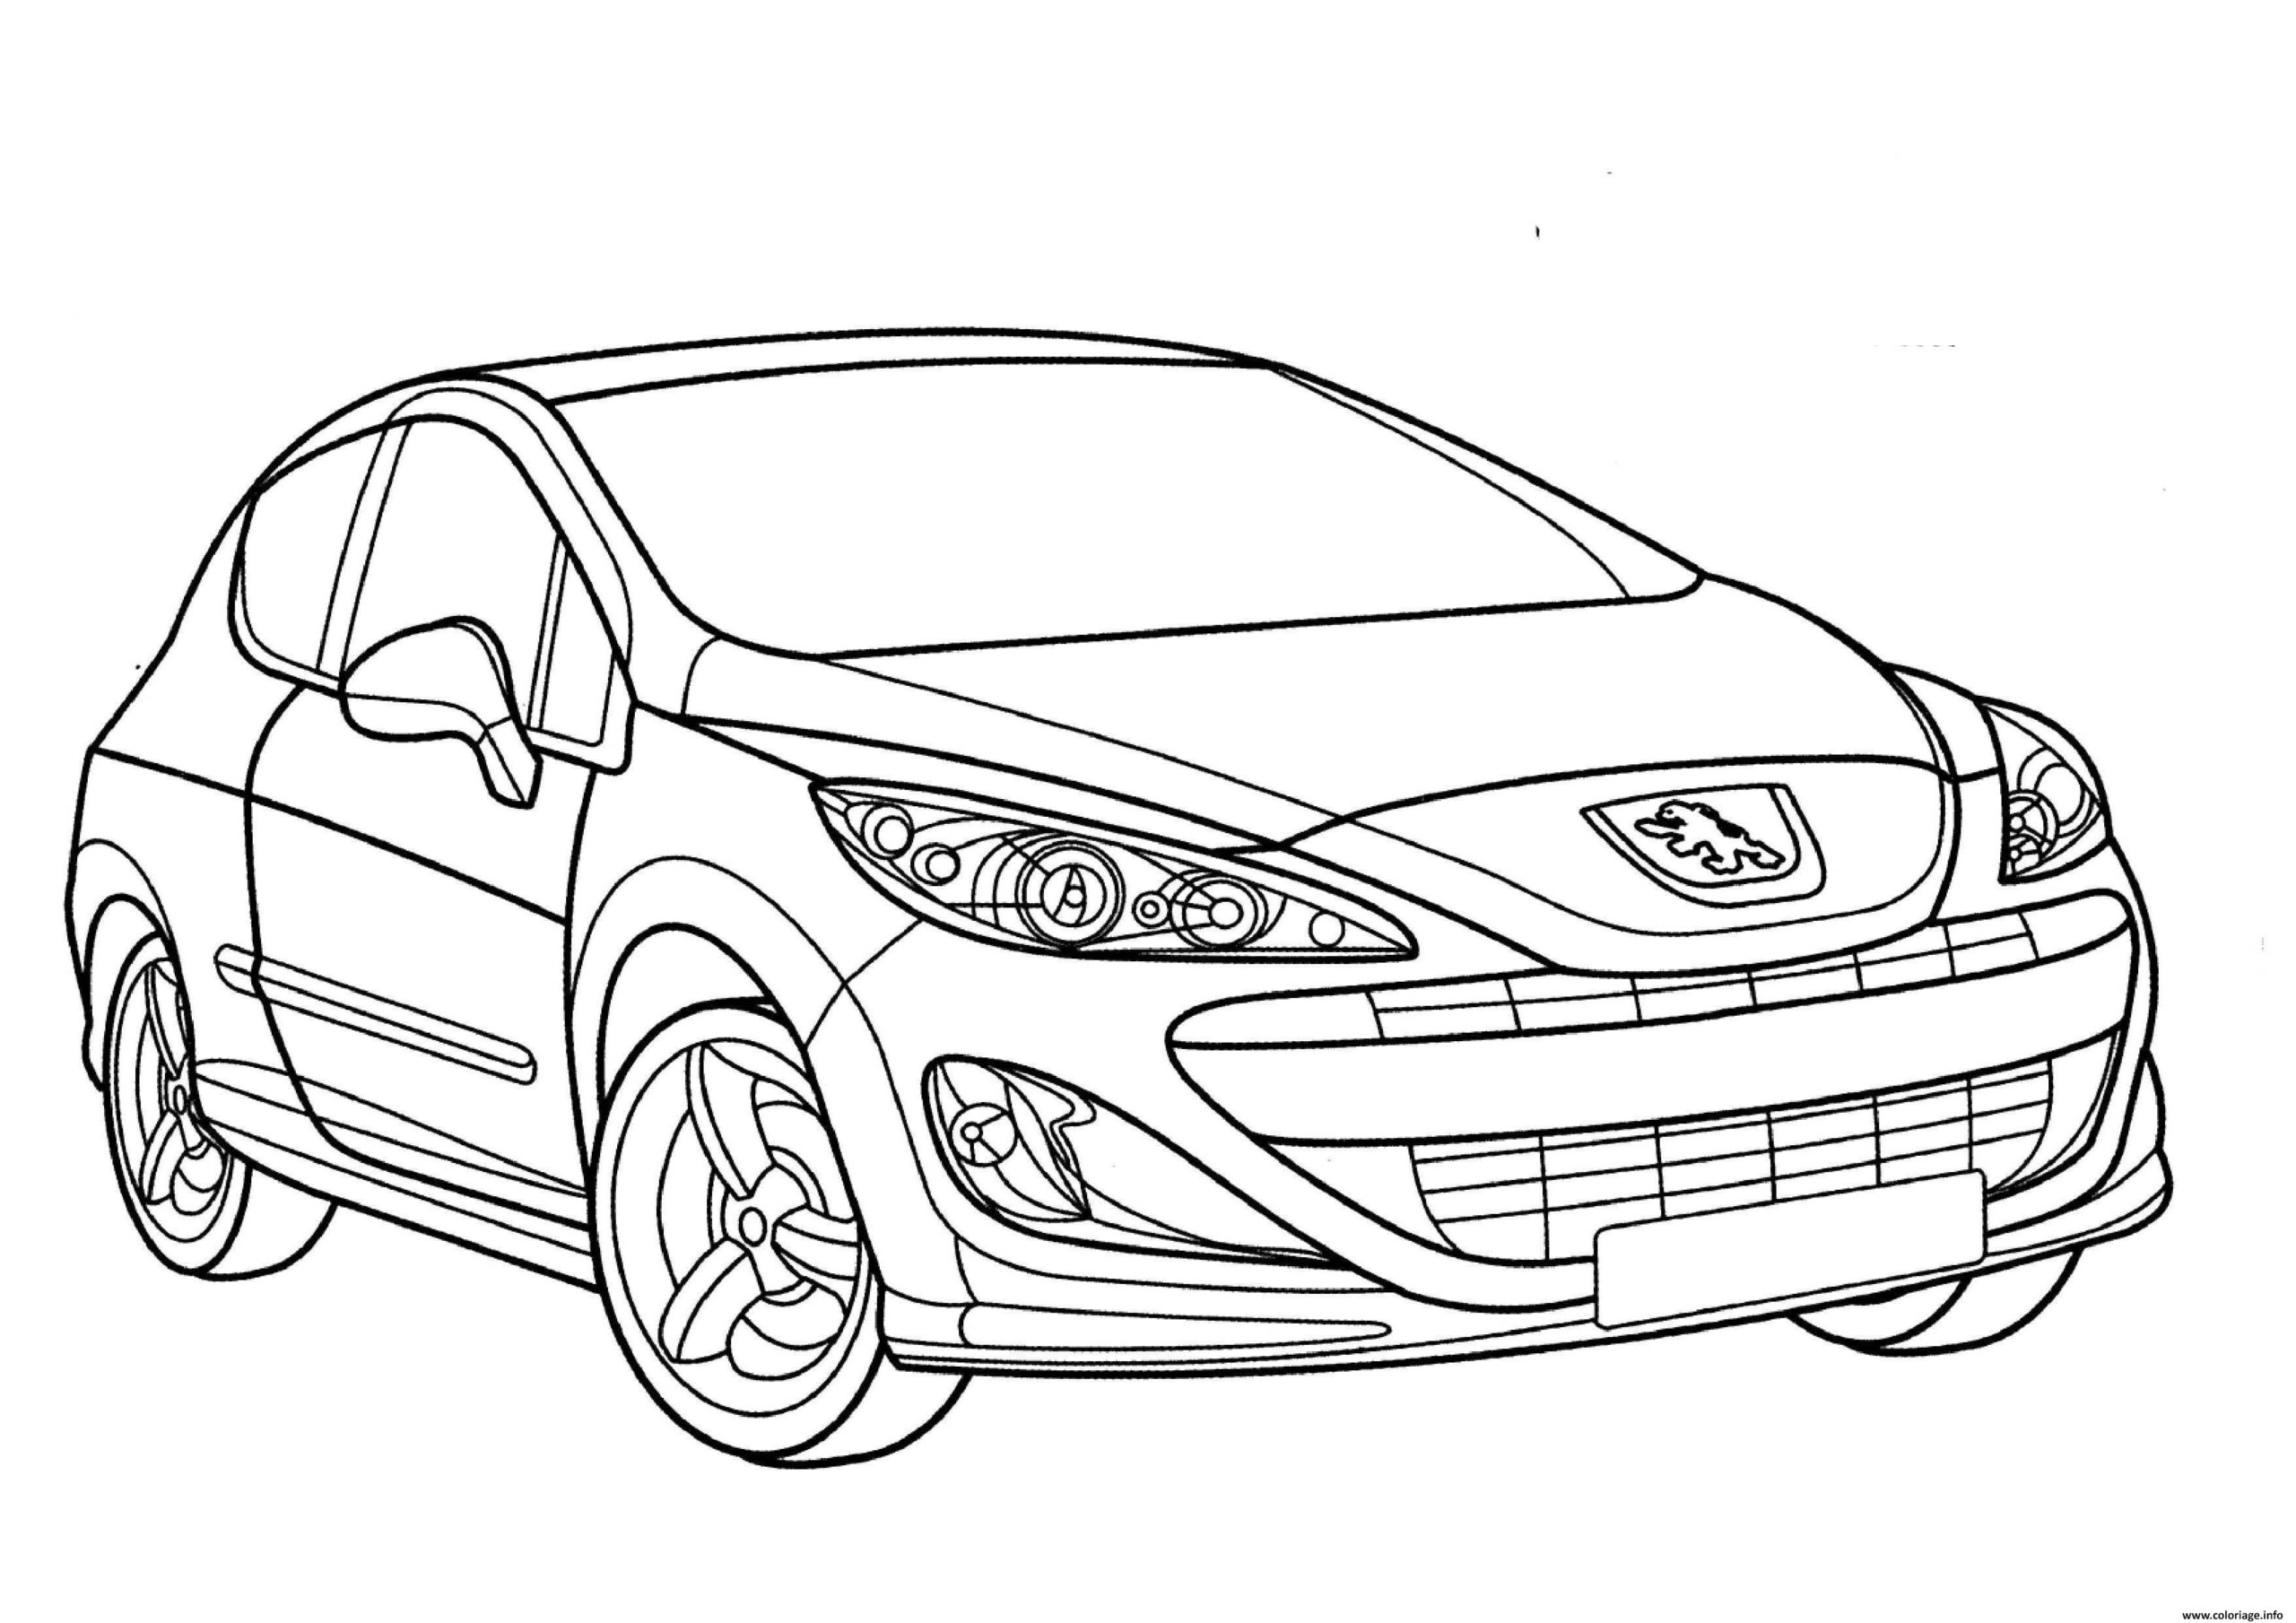 Cool Coloriage Voiture 81 Dans Coloriage Pages with Coloriage Voiture